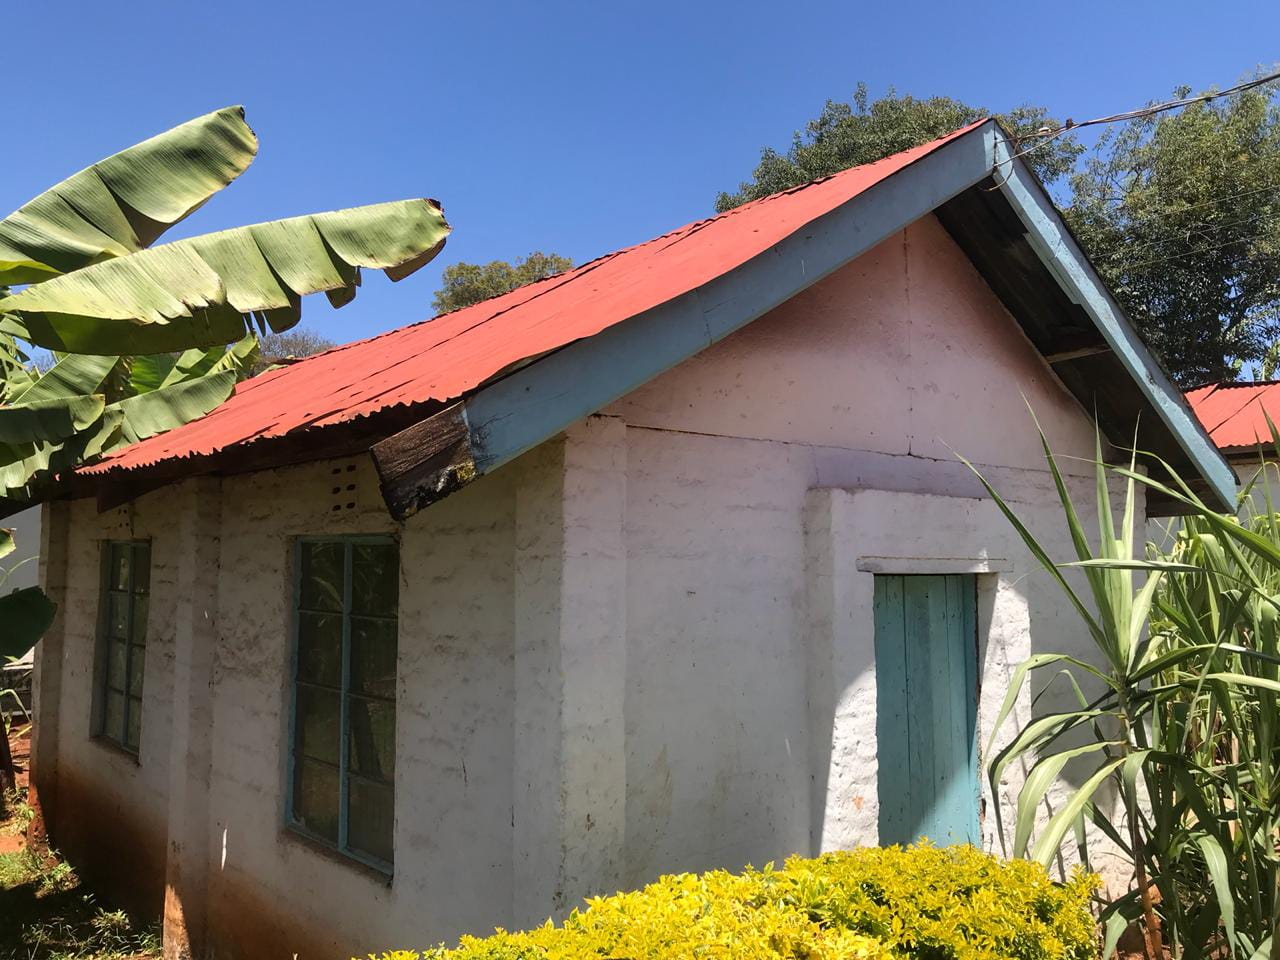 Former solitary confinement cell in Aguthi Works Camp, now Kangubiri Girls School. Windows were added by the school after independence.